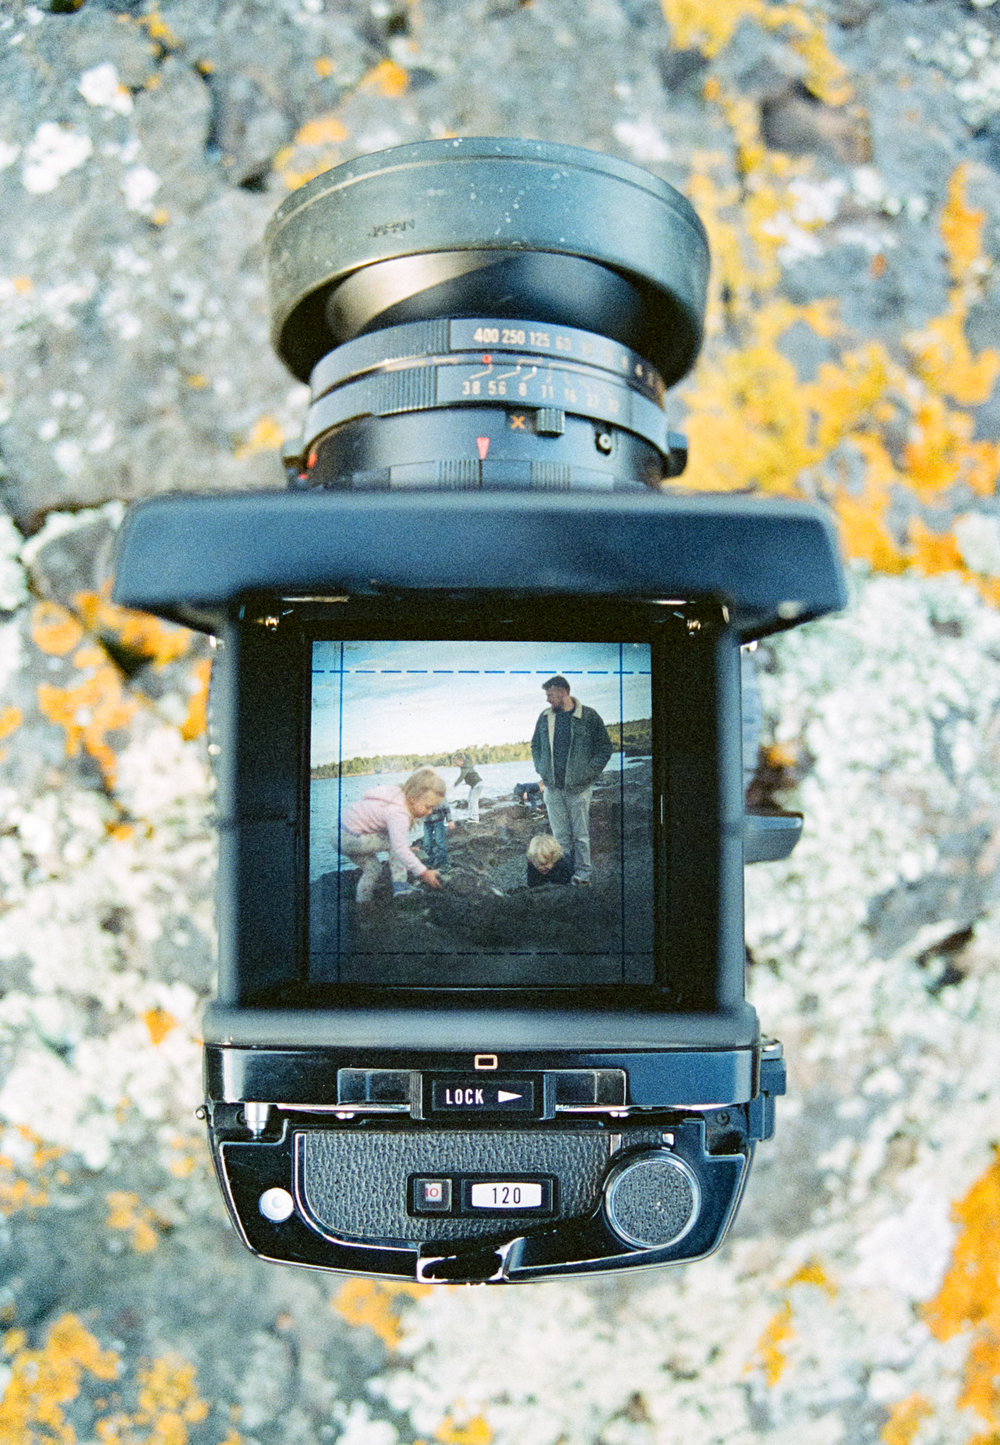 A film image taken of a film camera….very meta.